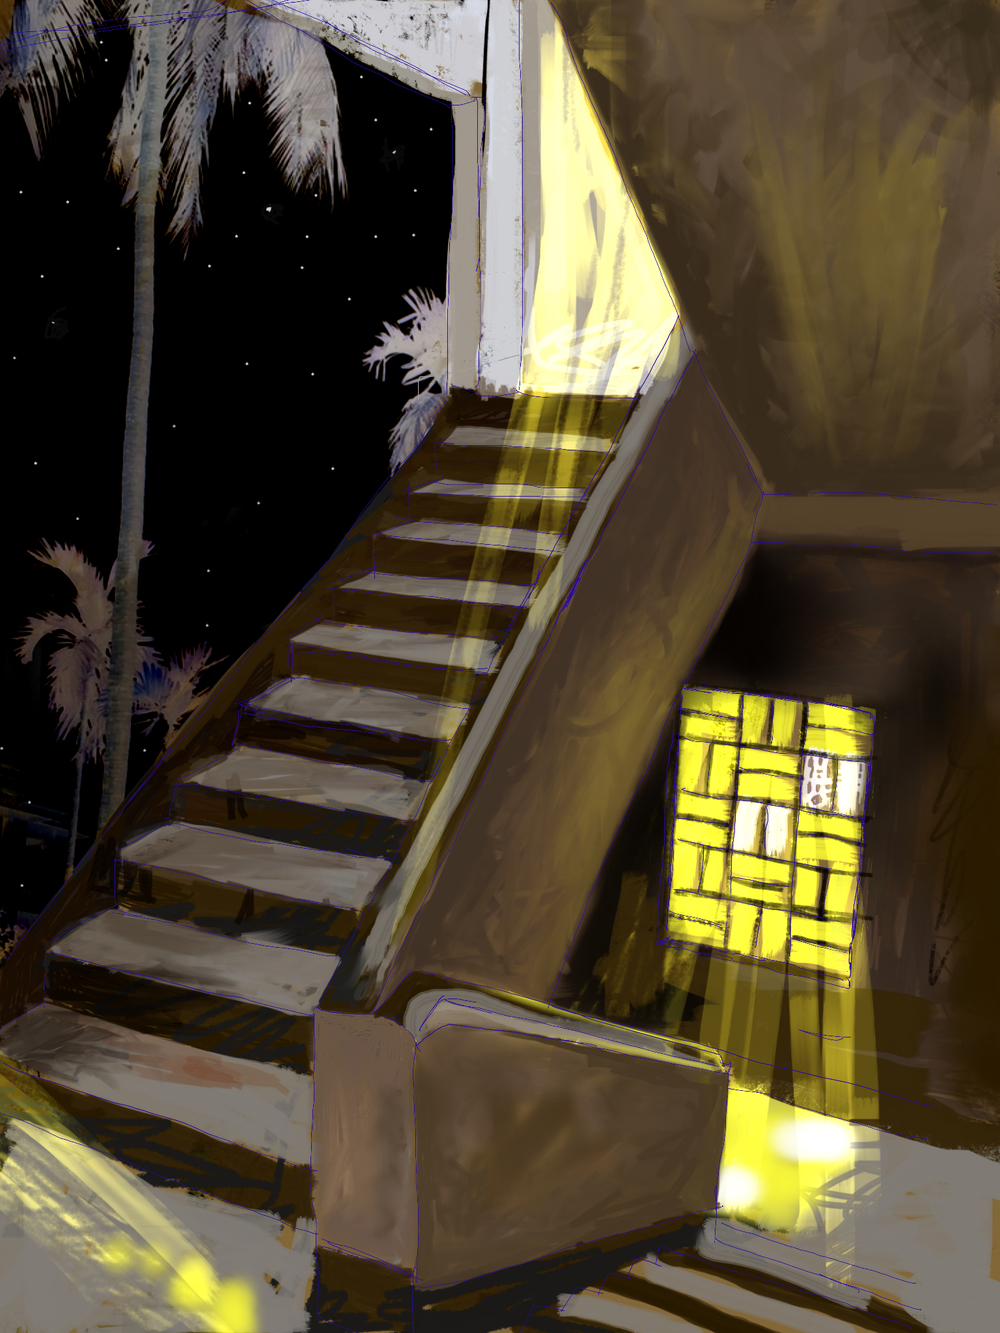 "Stairs to the Temple Room, Home, Baguiati   Electronics Painting, iPad, Procreate, Pencil 53,  Photoshop. © 2016 dimensions variable to 48"" x 60""  giclee limited edition prints available contact the artist"